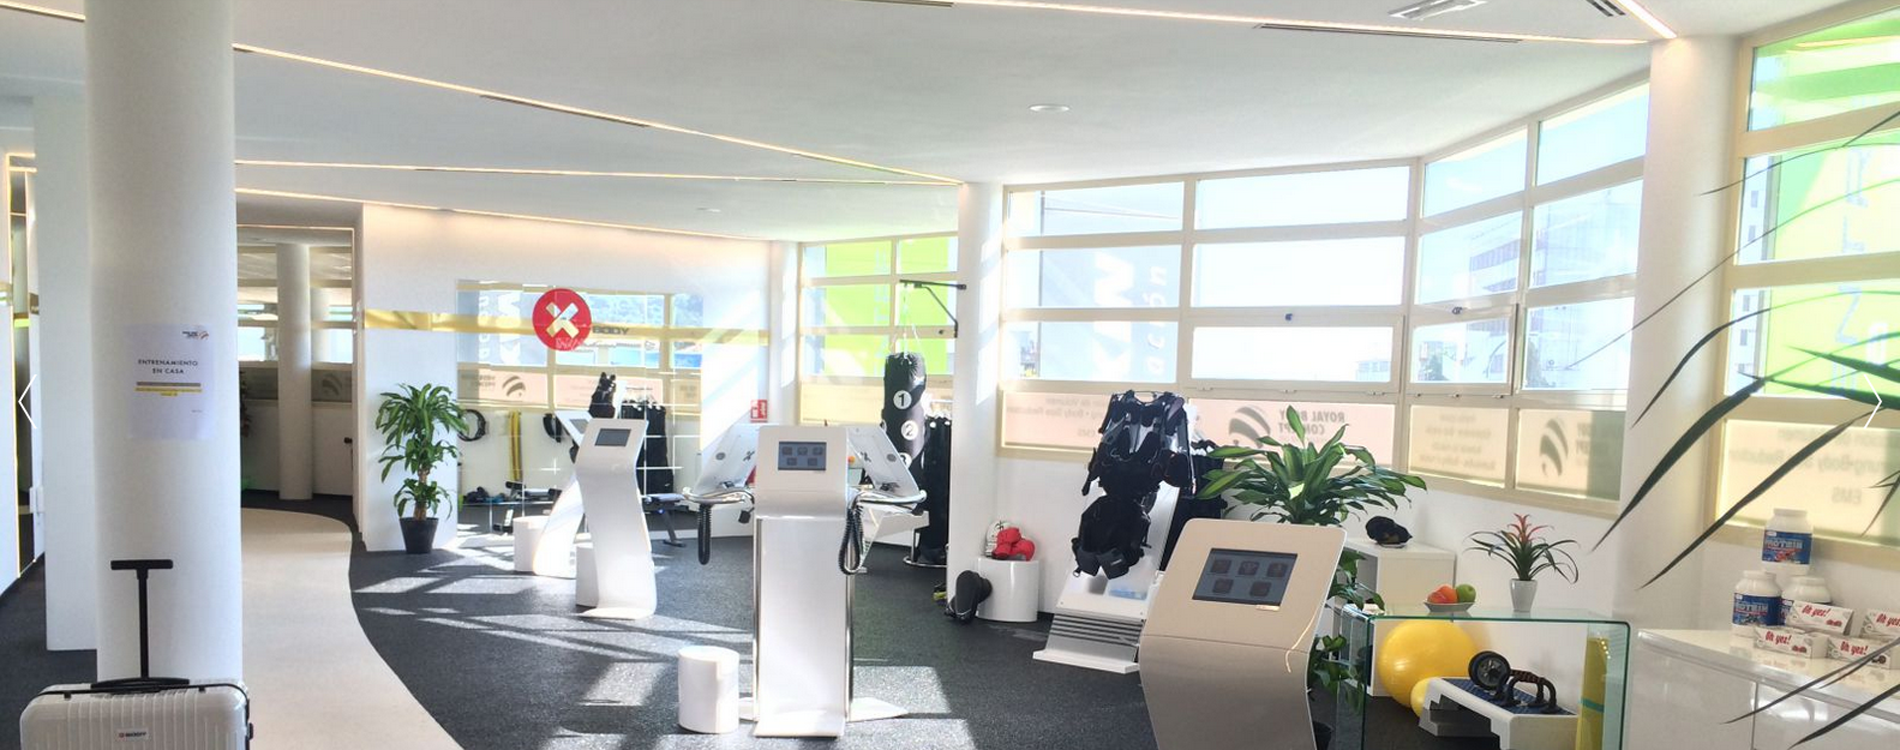 """Gym """"RBC concept"""" in Palma to take over"""